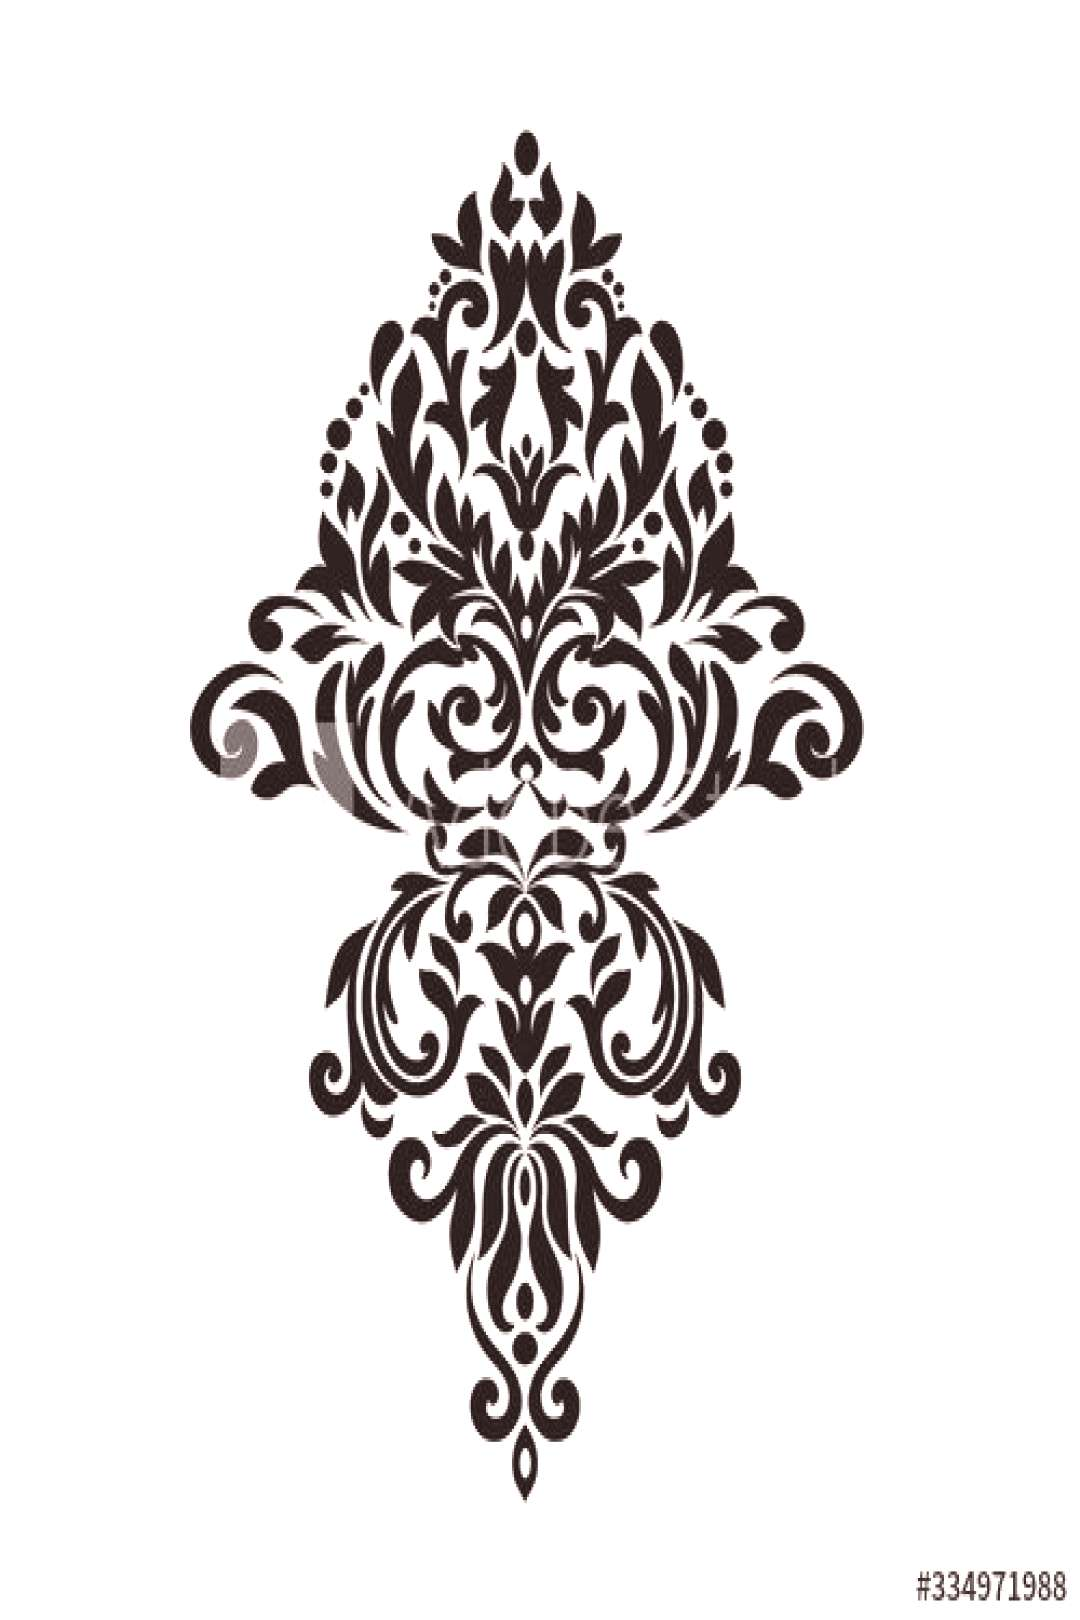 Vintage baroque ornament retro pattern antique style acanthus on a black background. Decoration for